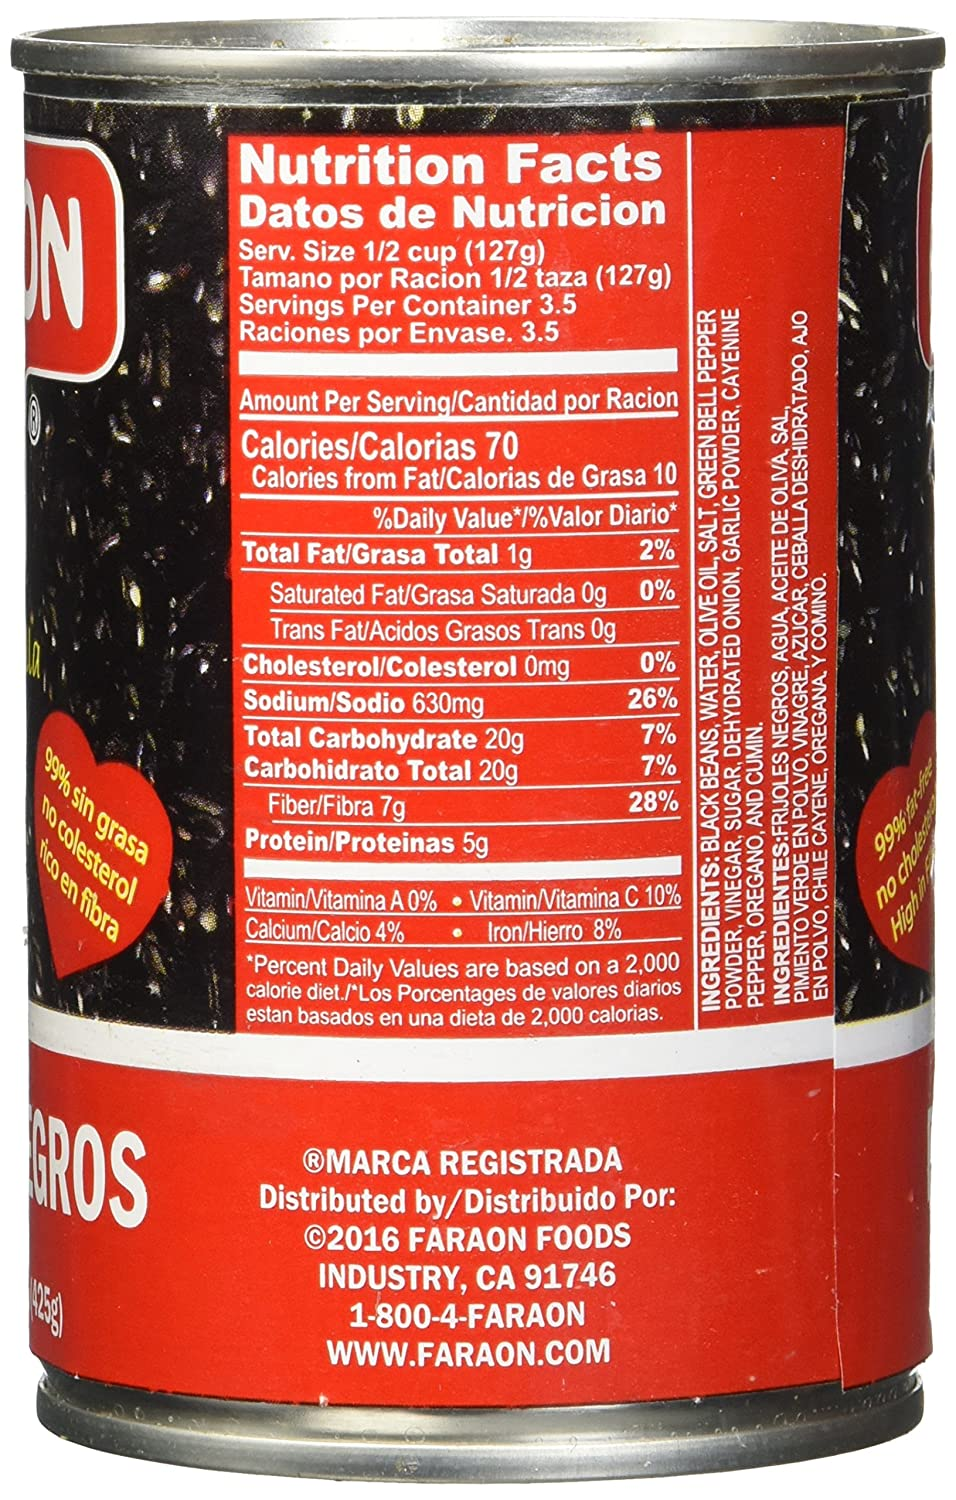 FARAON Blacks Seasoned, 15 Ounce (Pack of 12): Amazon.com: Grocery & Gourmet Food